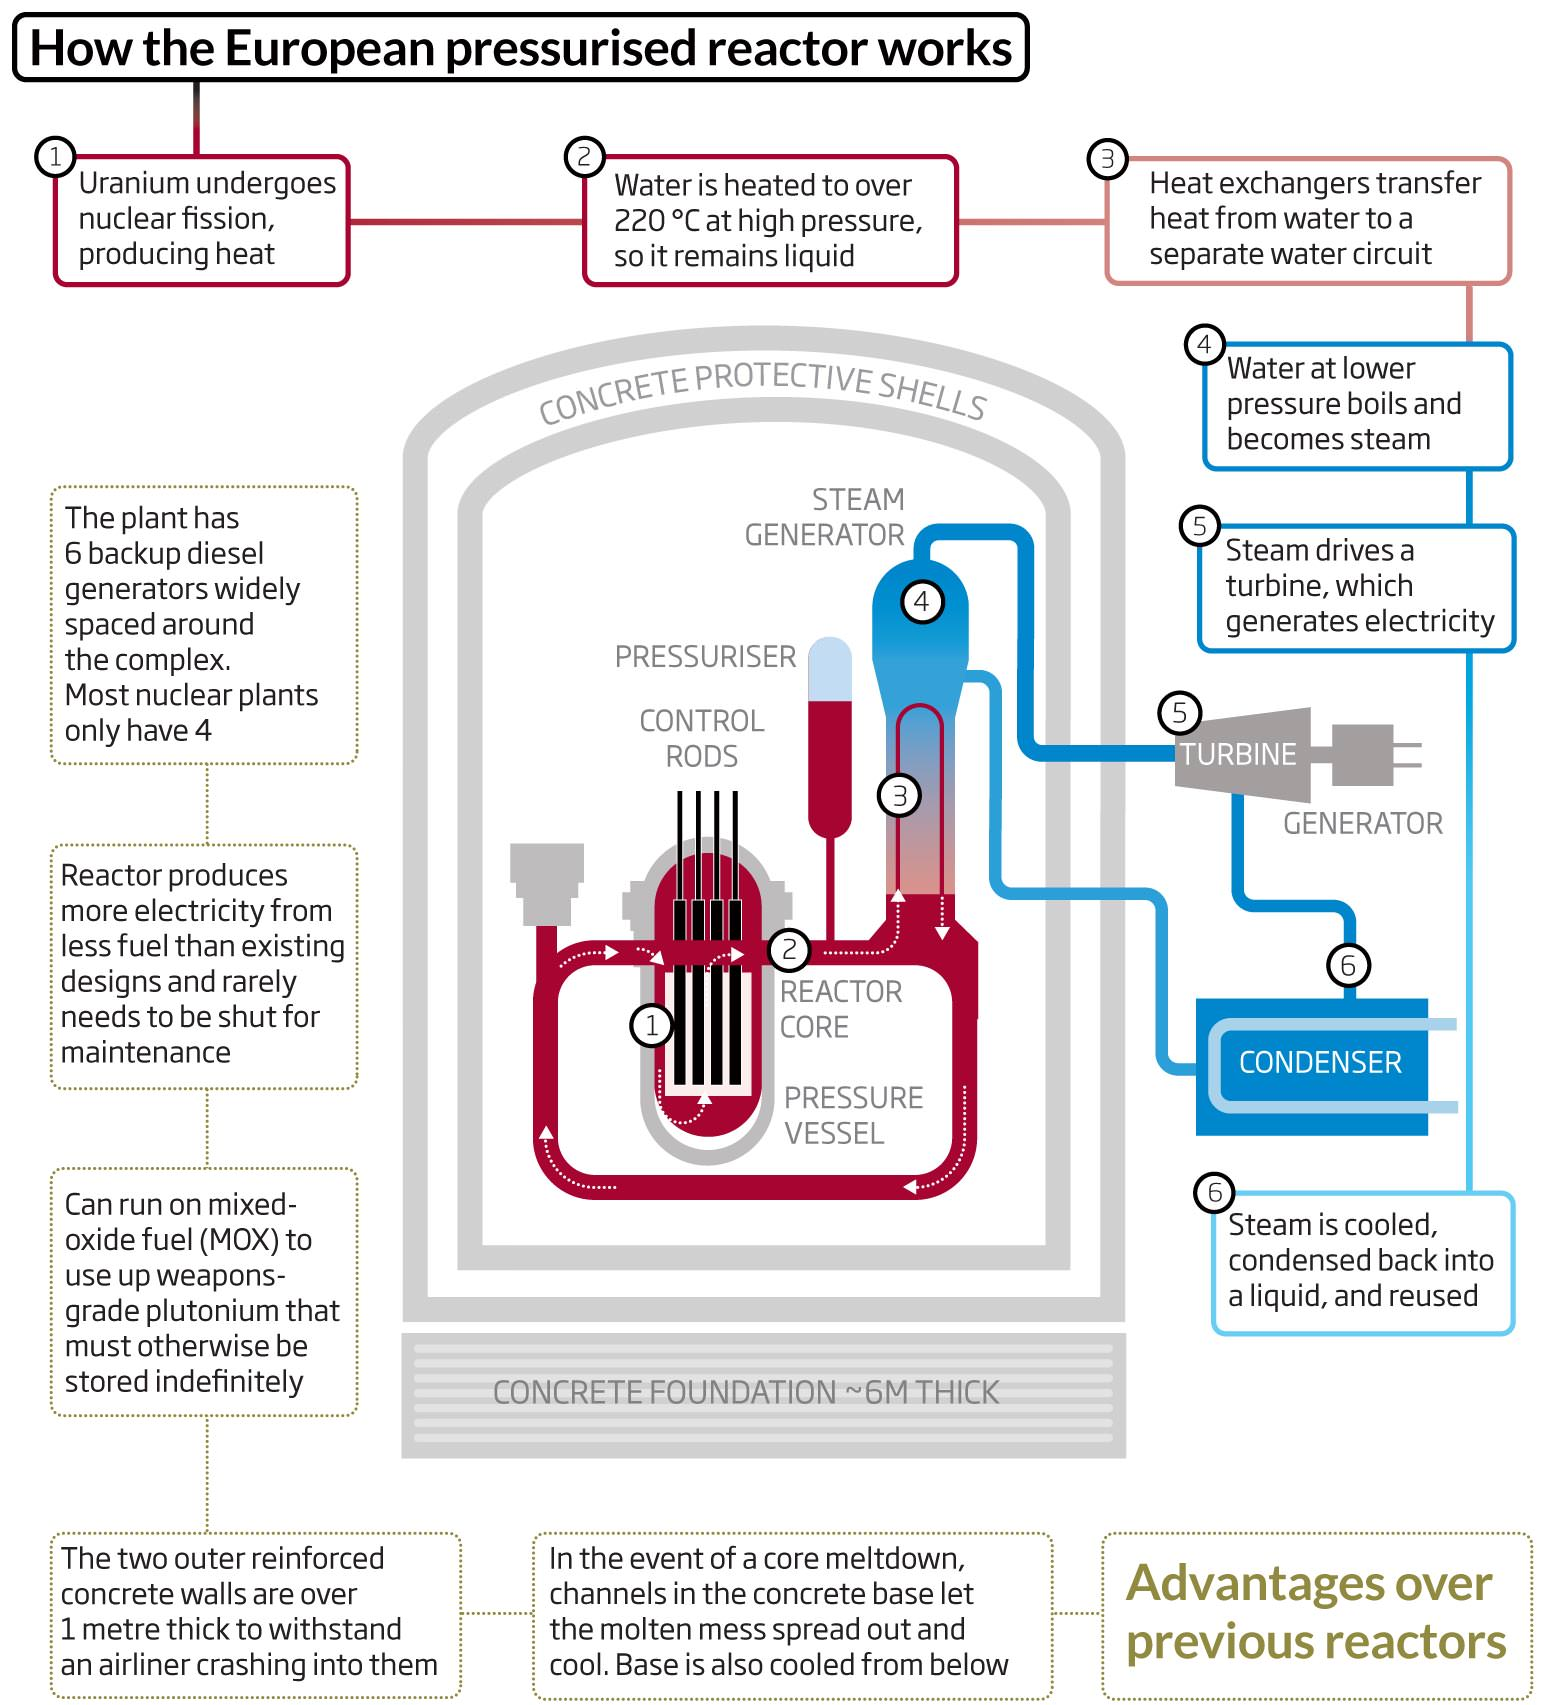 How the European pressurised reactor works